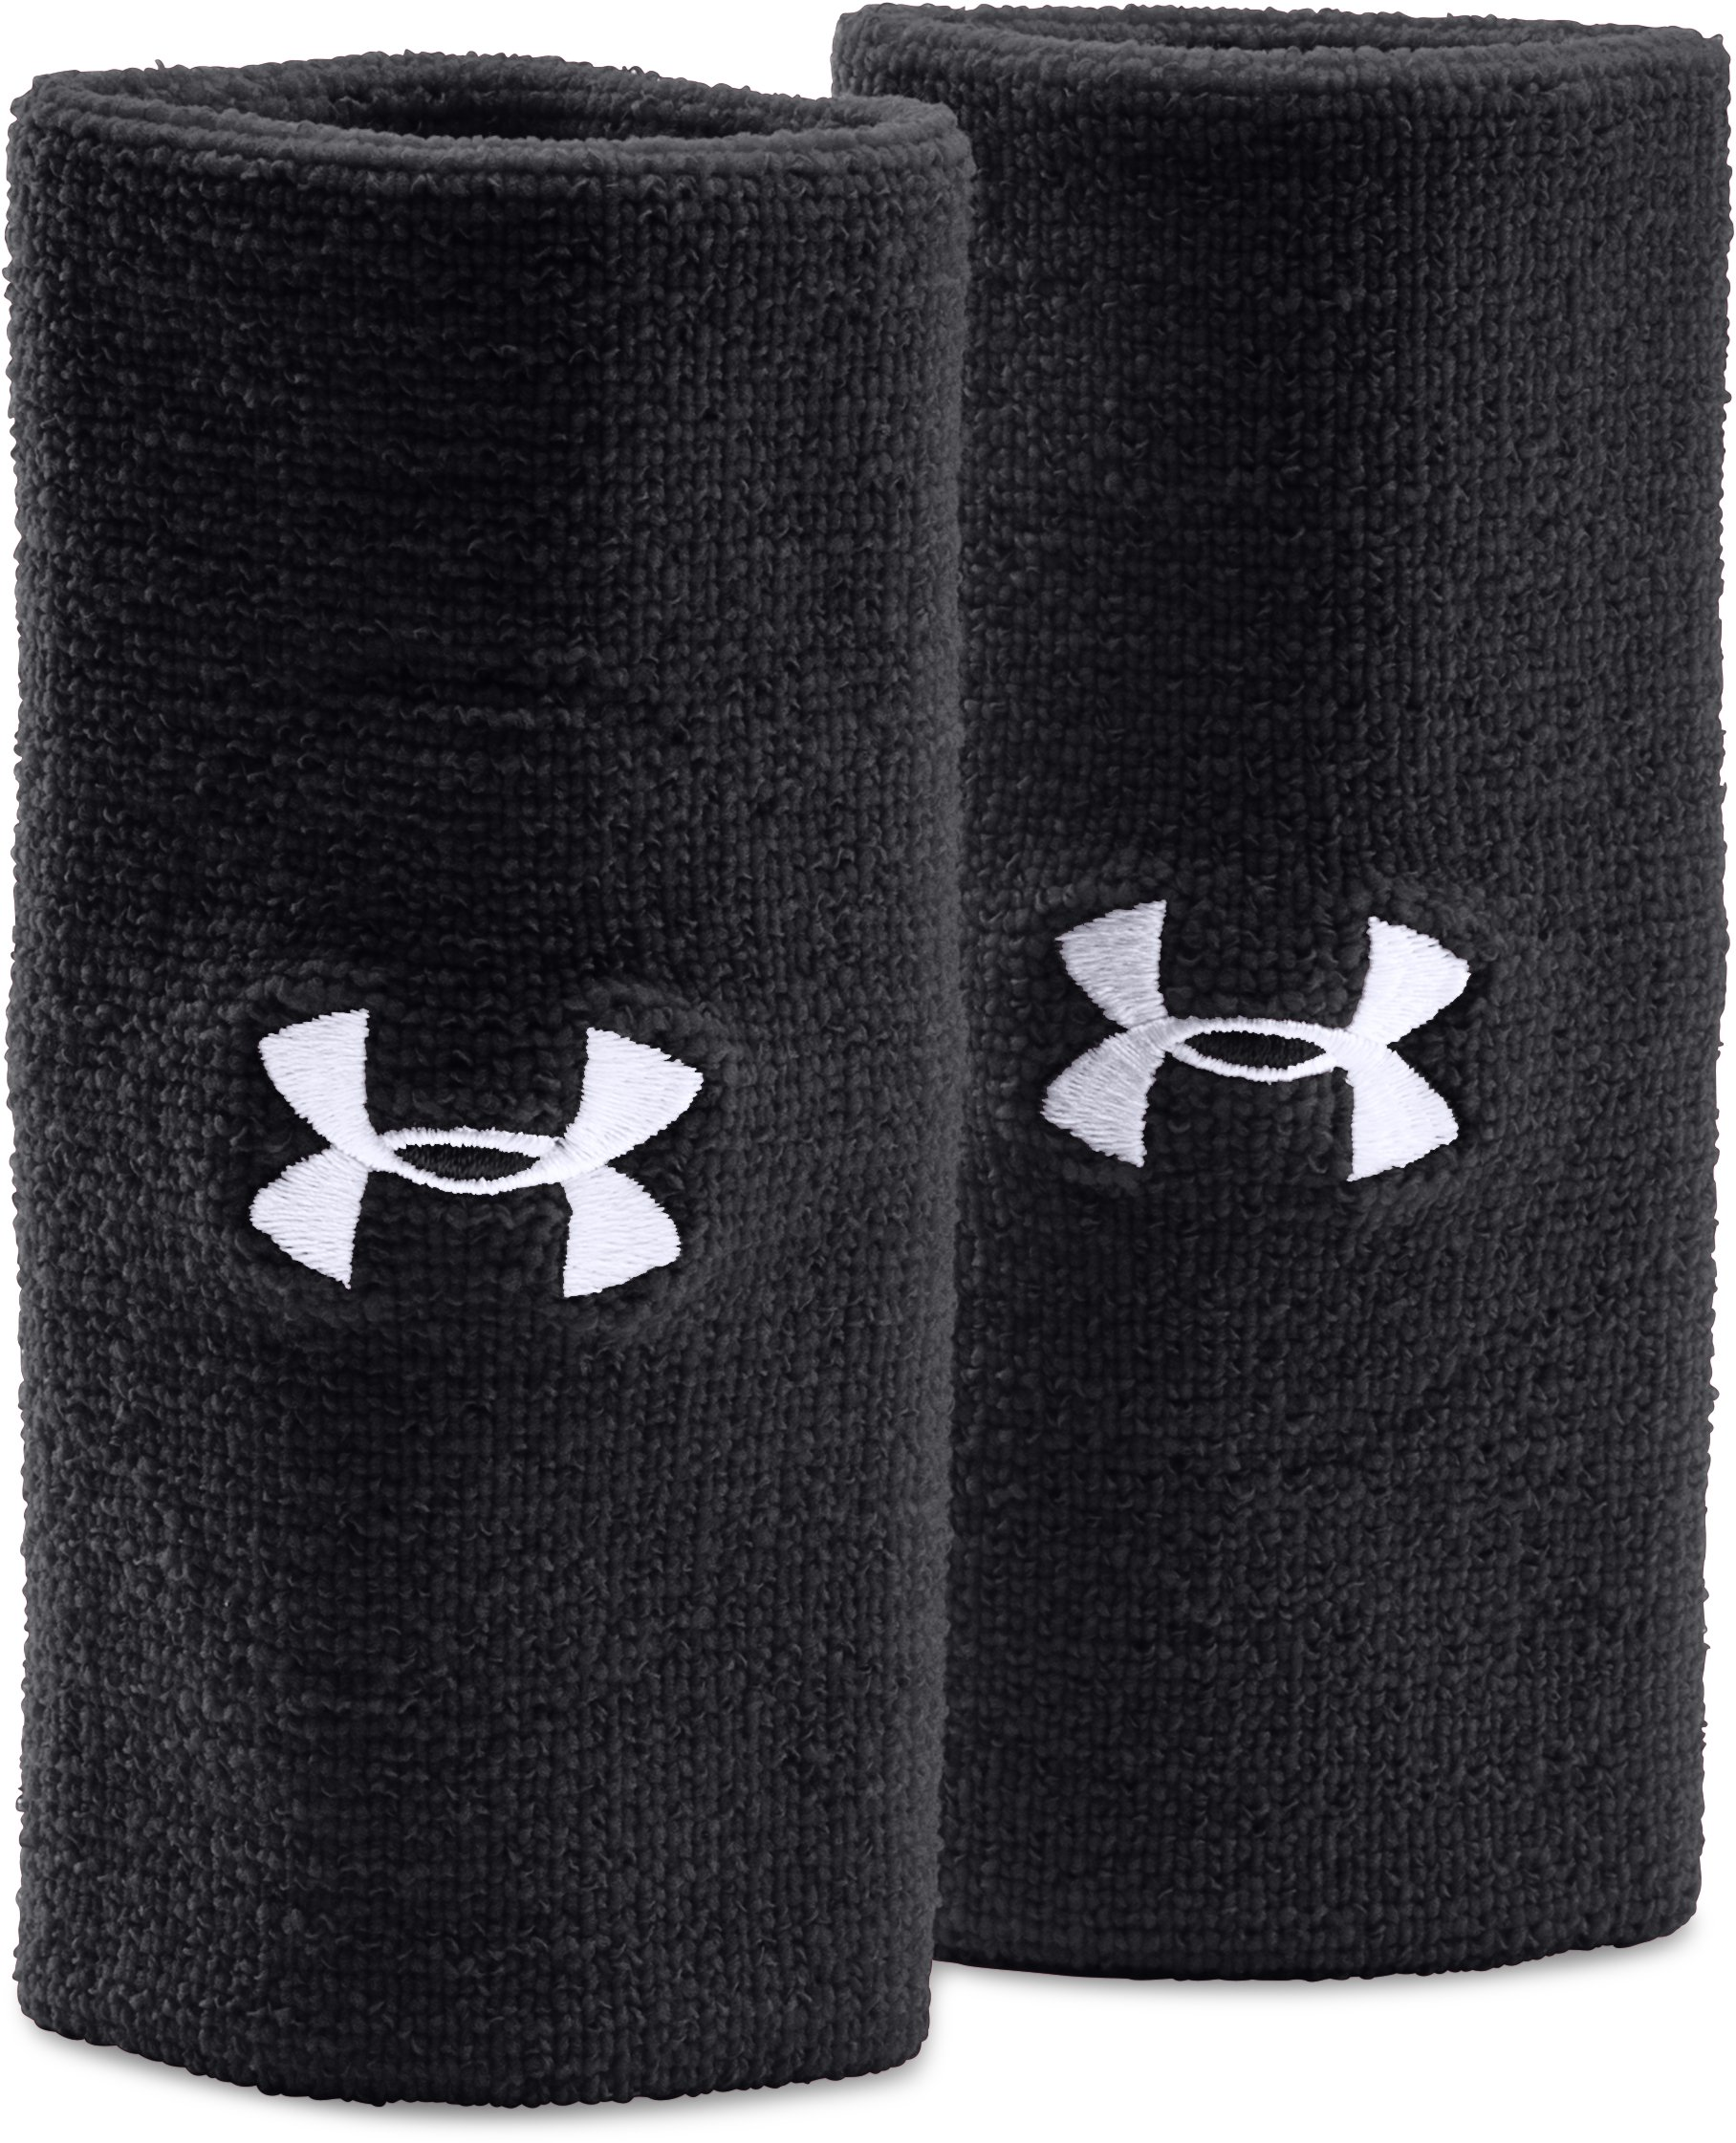 "best wristbands 6"" UA Performance Wristband 2-Pack Great product and great width!...I highly recommend this to anybody....great for toweling and dabbing."